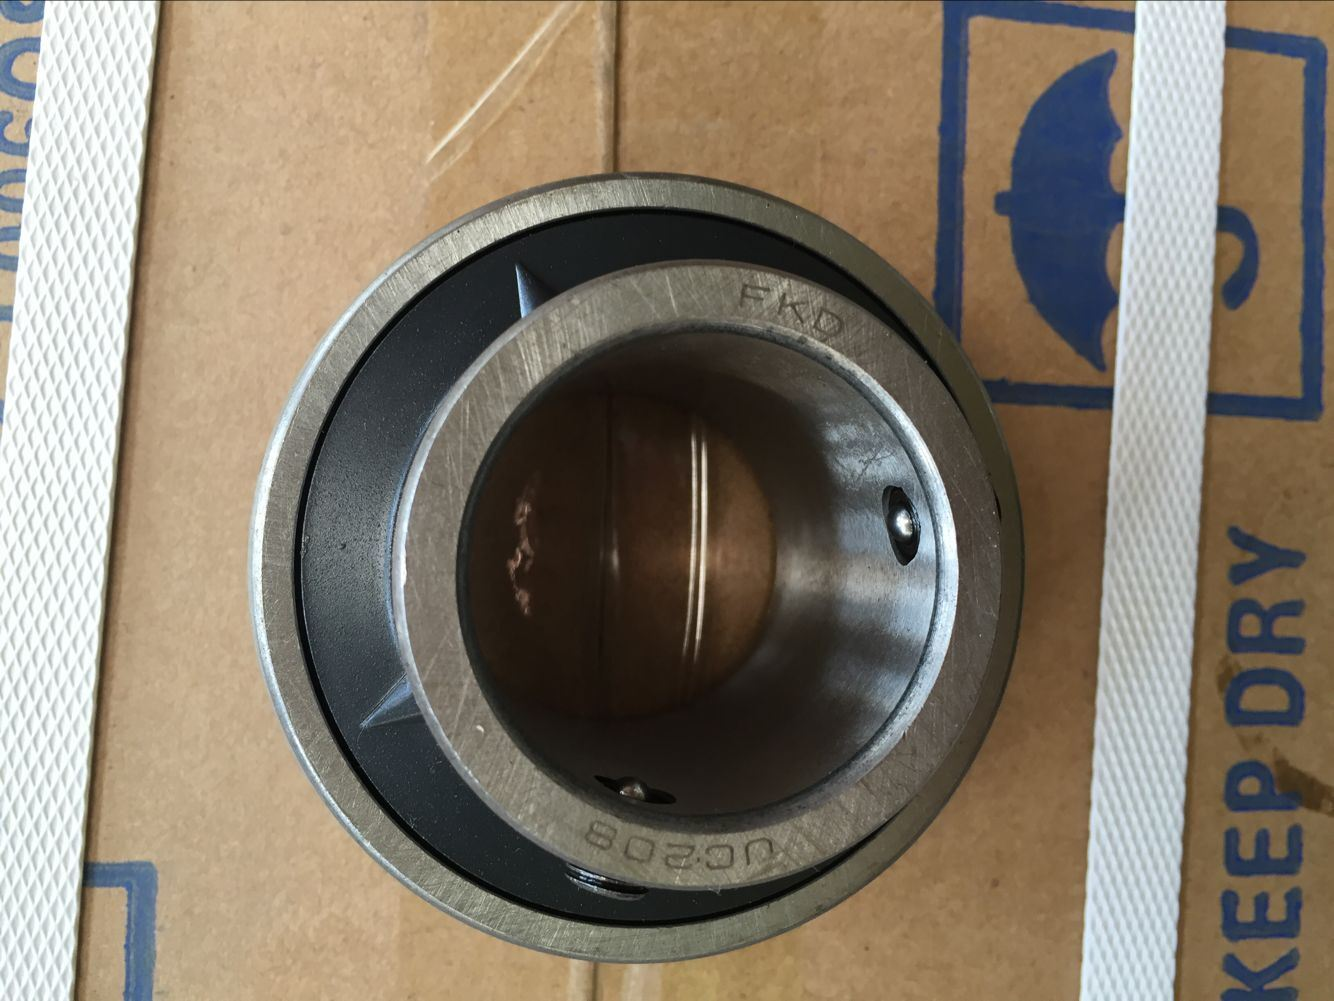 Uc Bearings (UC 200) Ball Bearing Unit/Pillow Block Bearings